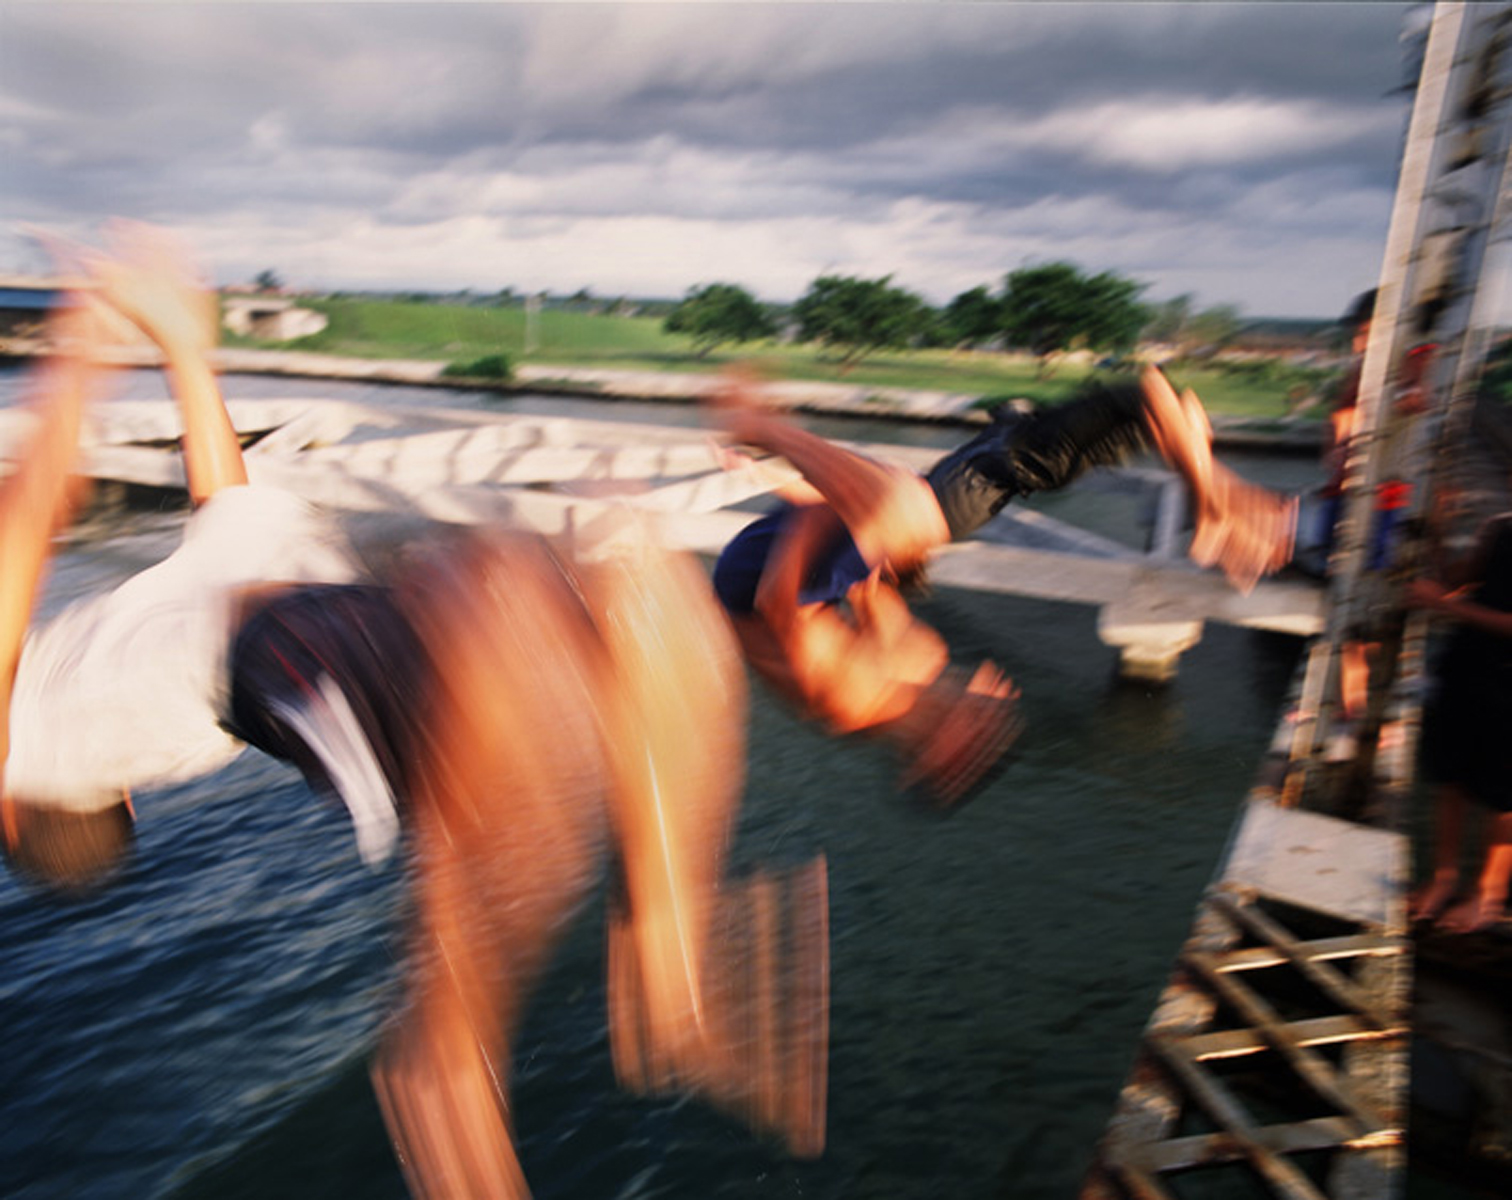 Three Teenage boys synchronize their backflips as they jump off a railway brdige into the waterway below. Both the railway bridge and waterway are used for commerical purposes by freight trains and commercial cargo ships. These teenage boys jump and swim at their own risk due to a lack of laws, police enforcement, or opportunites for jobs or educational summer programs.Mantanzas, Cuba